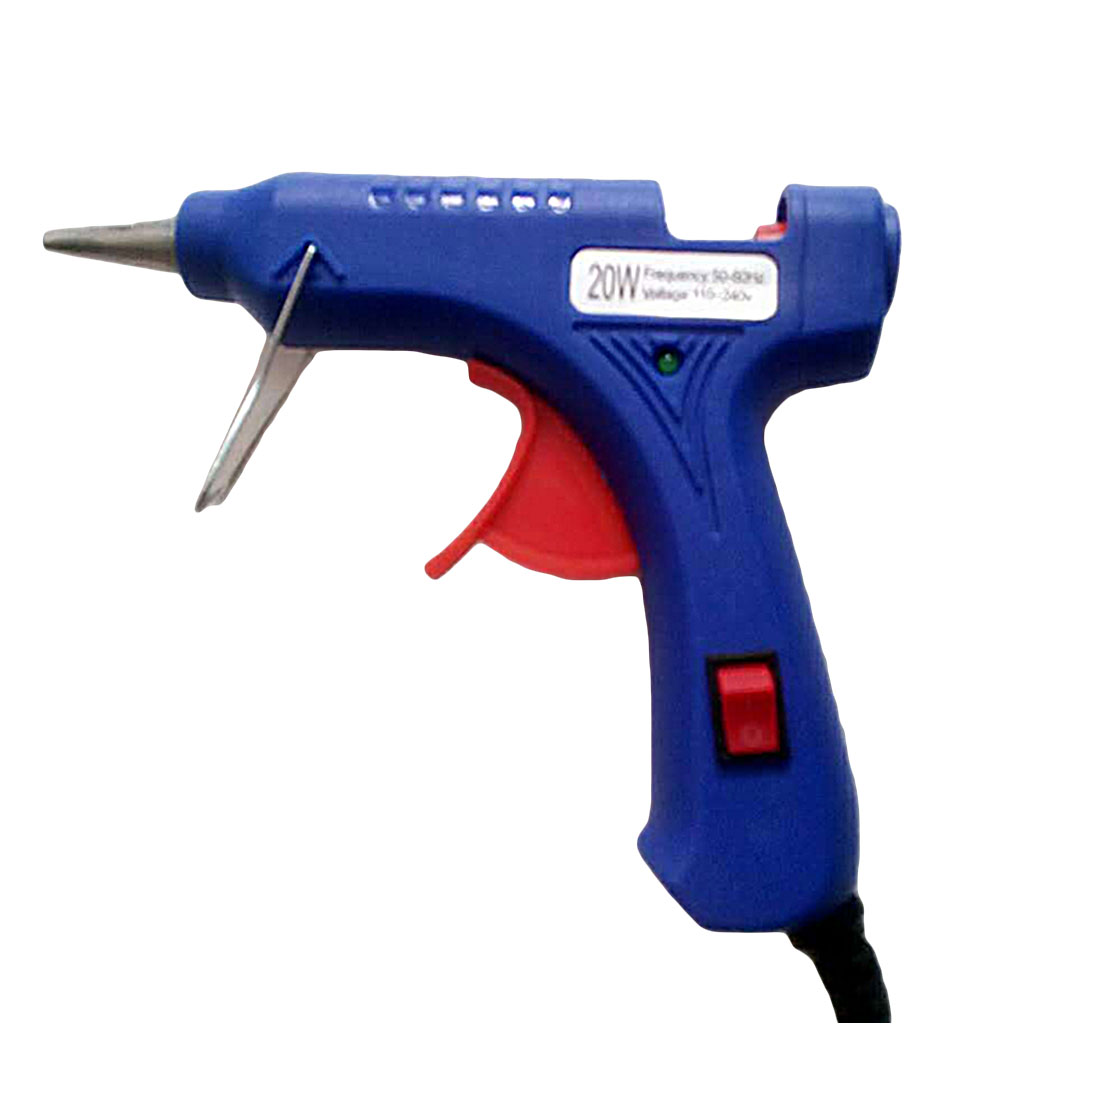 1Pcs High Temp Heater Melt A Hot Glue Gun 20W Repair Tool Heat Gun Blue Mini Gun EU Plug